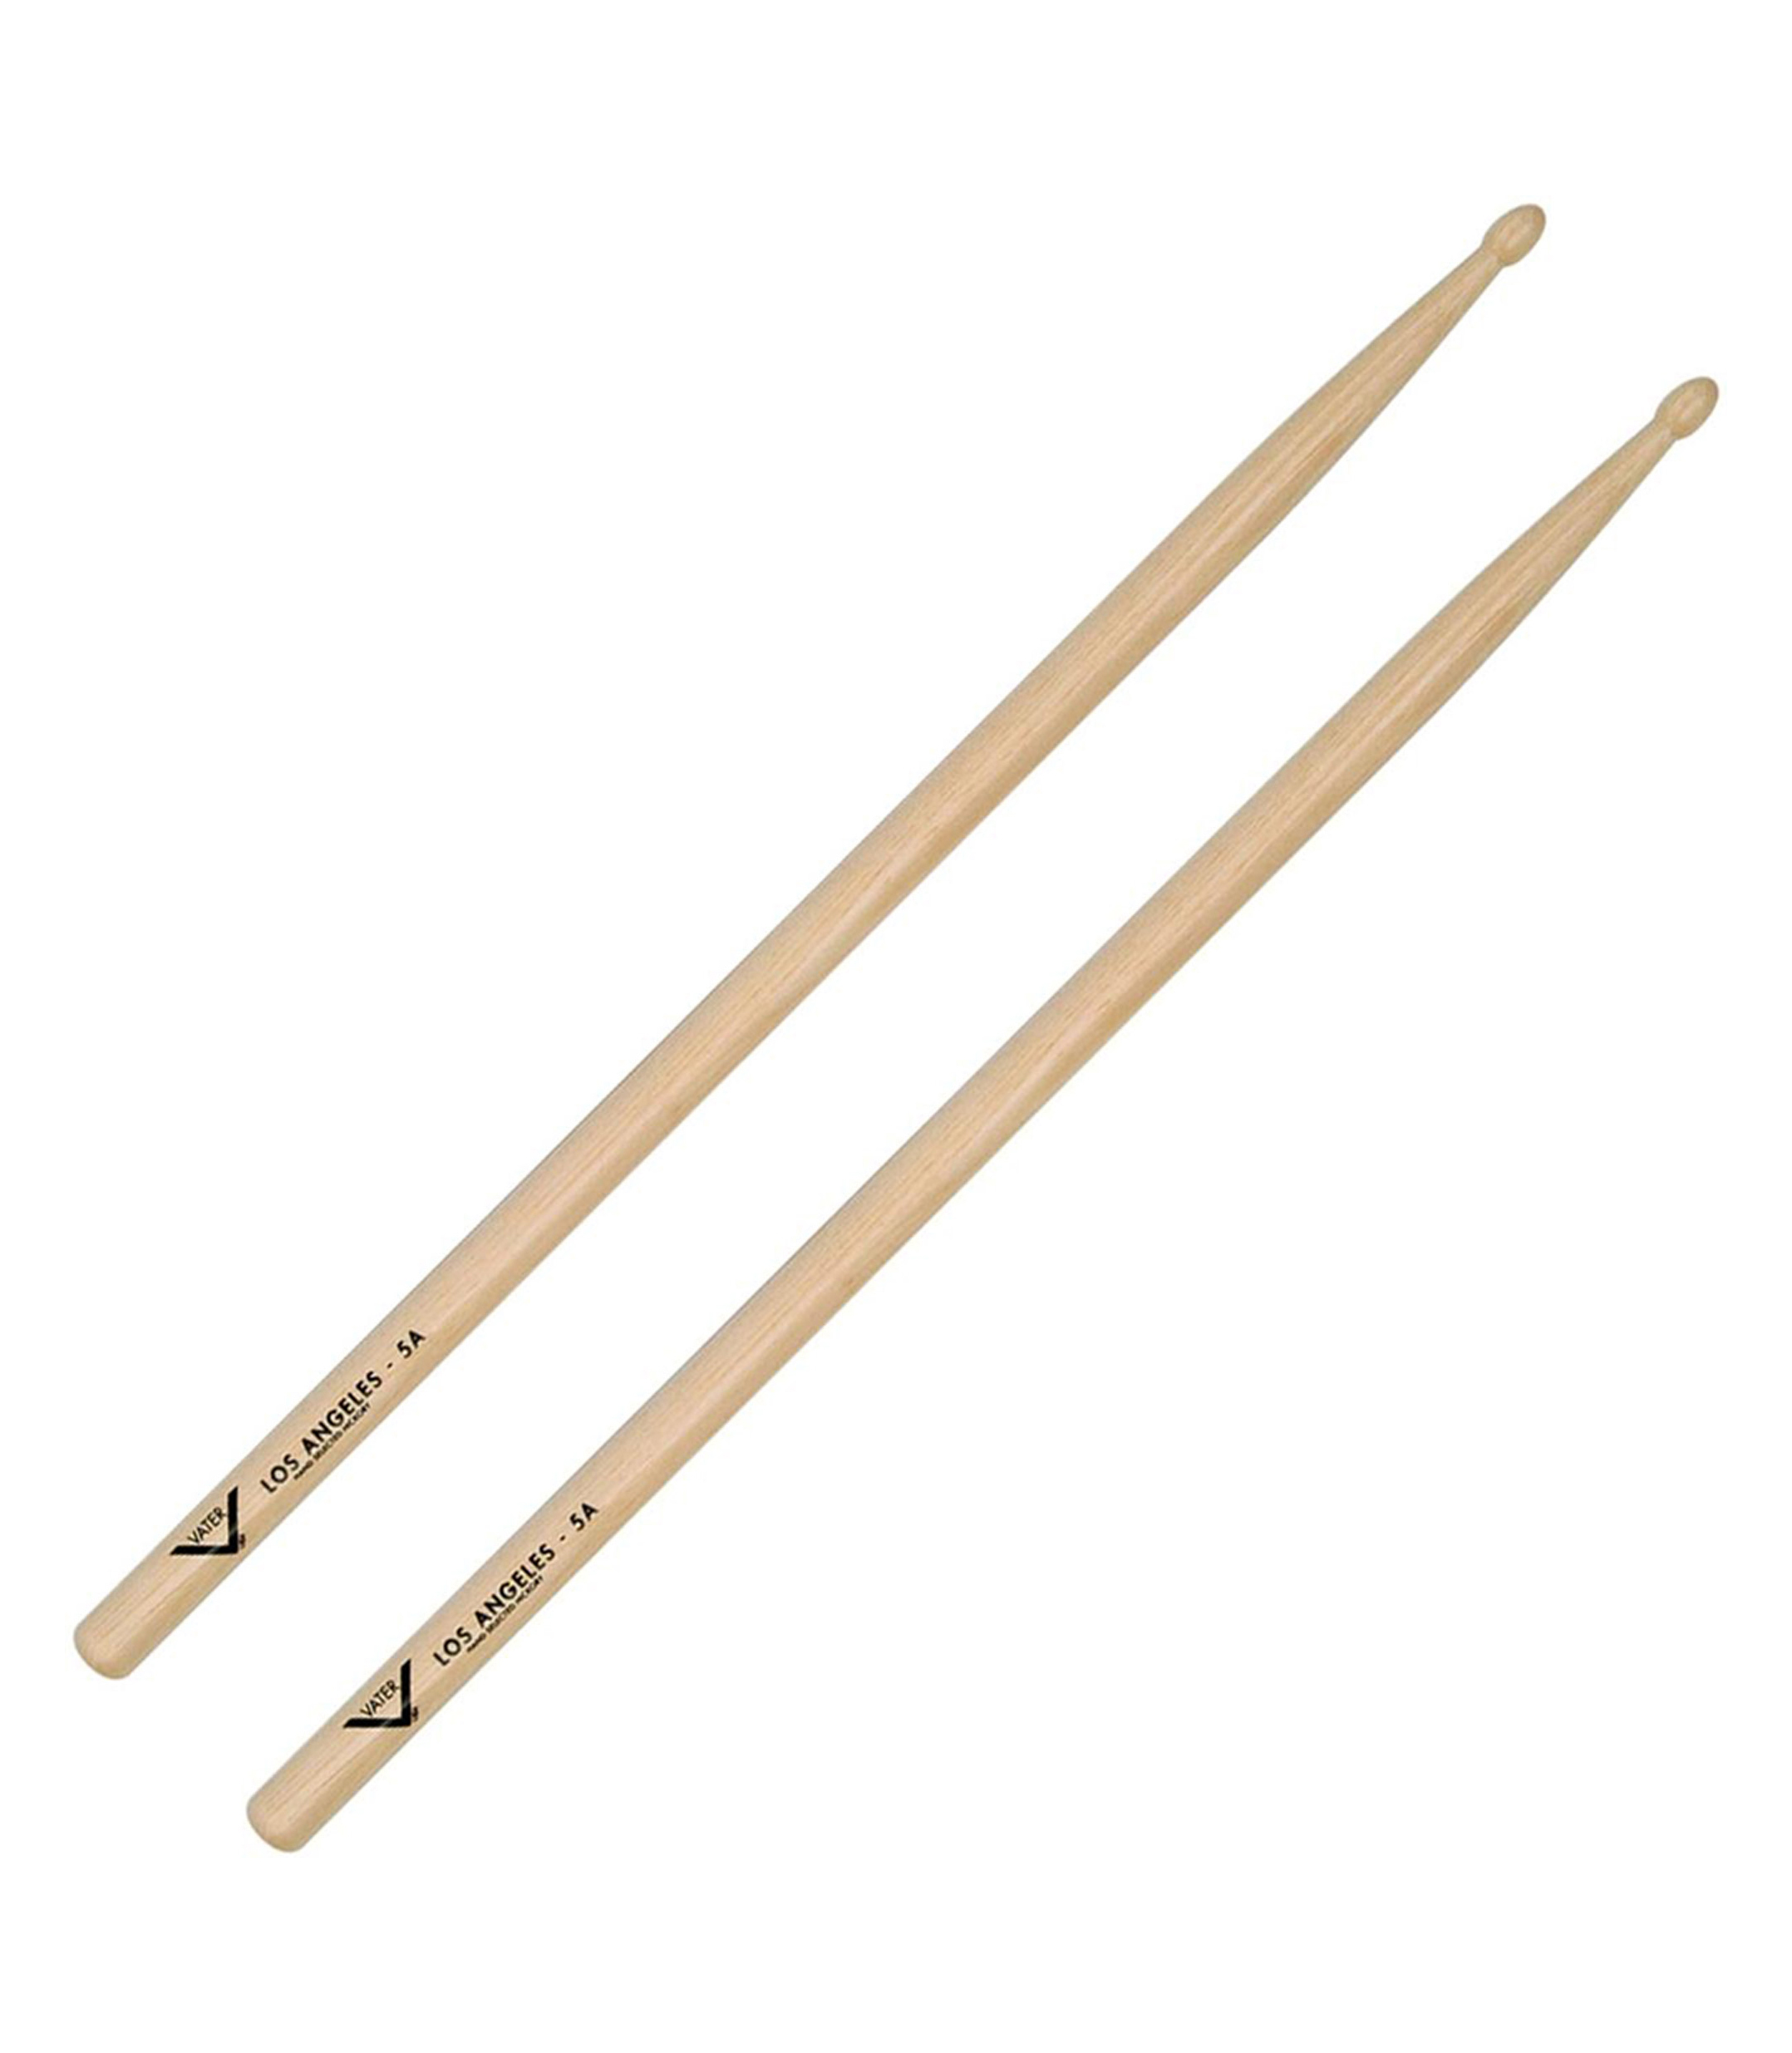 VATER - VH5AW - Melody House Musical Instruments